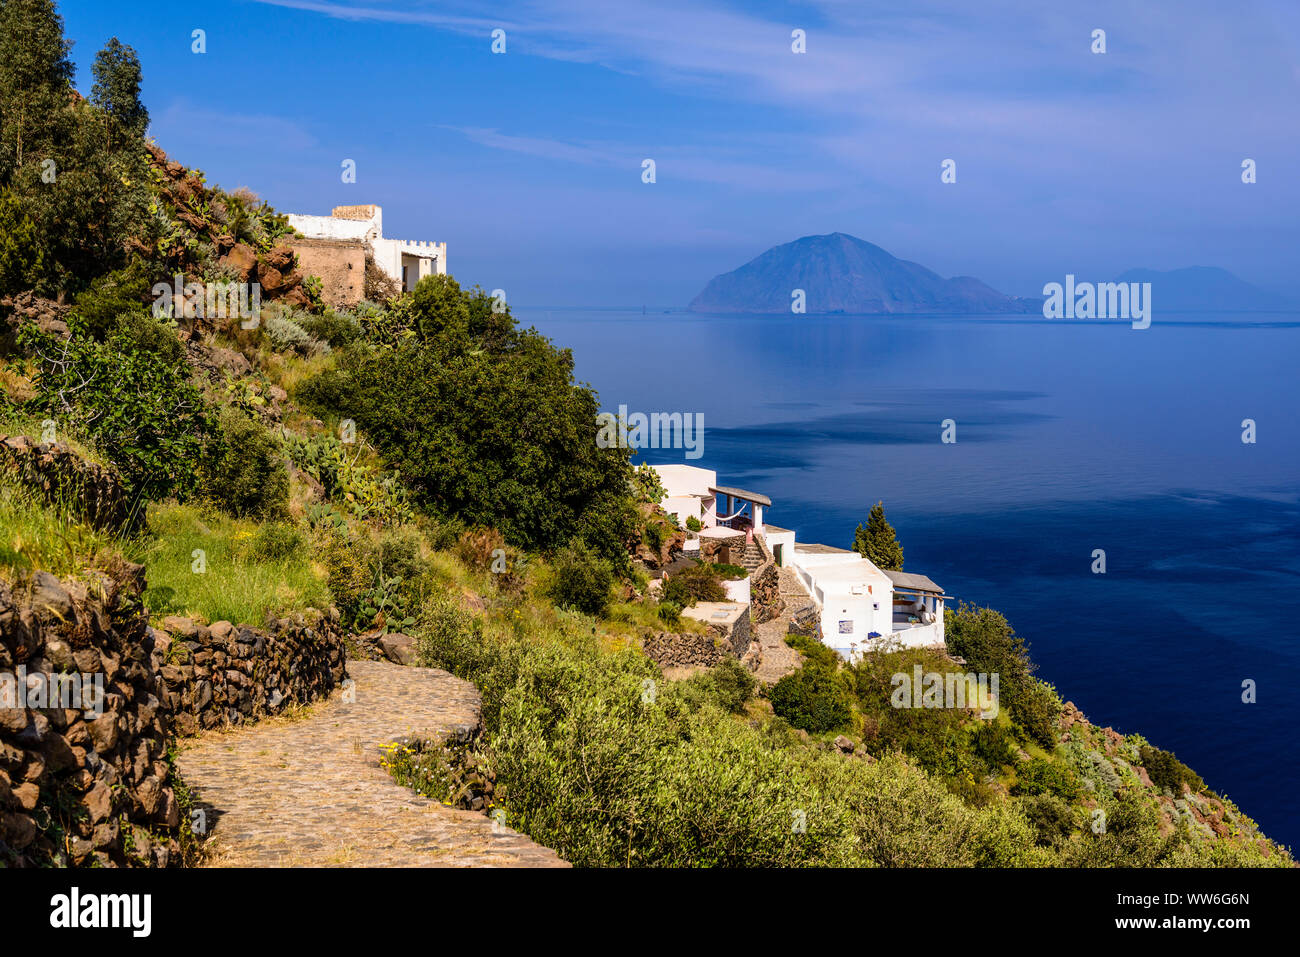 Italy, Sicily, Aeolian Islands, Alicudi, view at San Bartolo against Filicudi Stock Photo